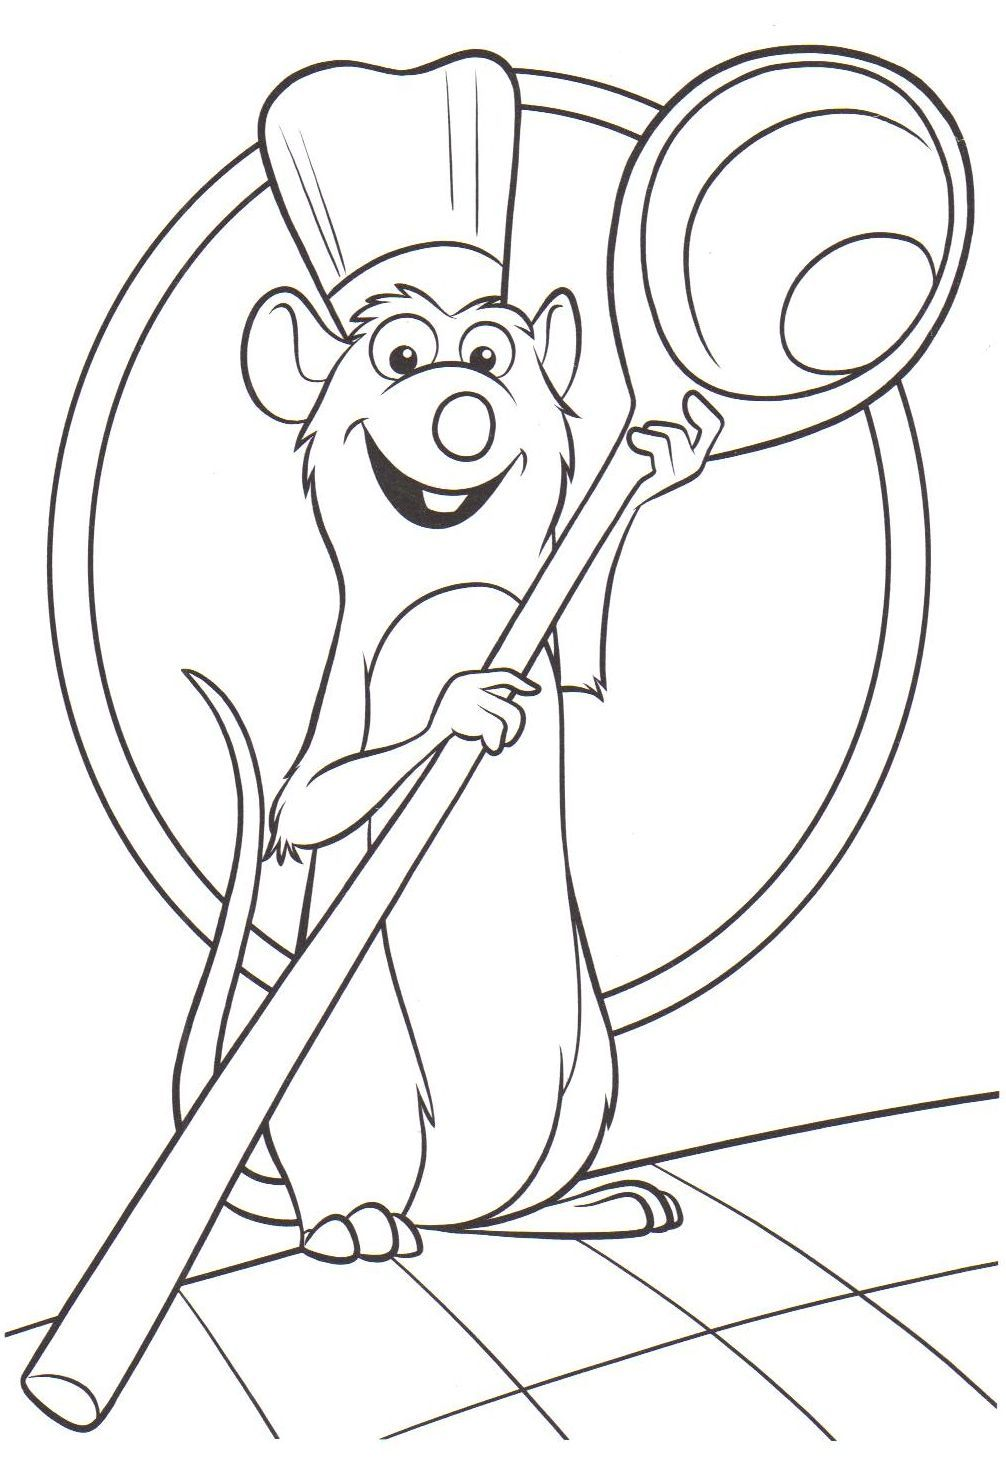 Ratatouille Coloring Pages Free Disney Coloring Pages Coloring Pages Disney Coloring Pages